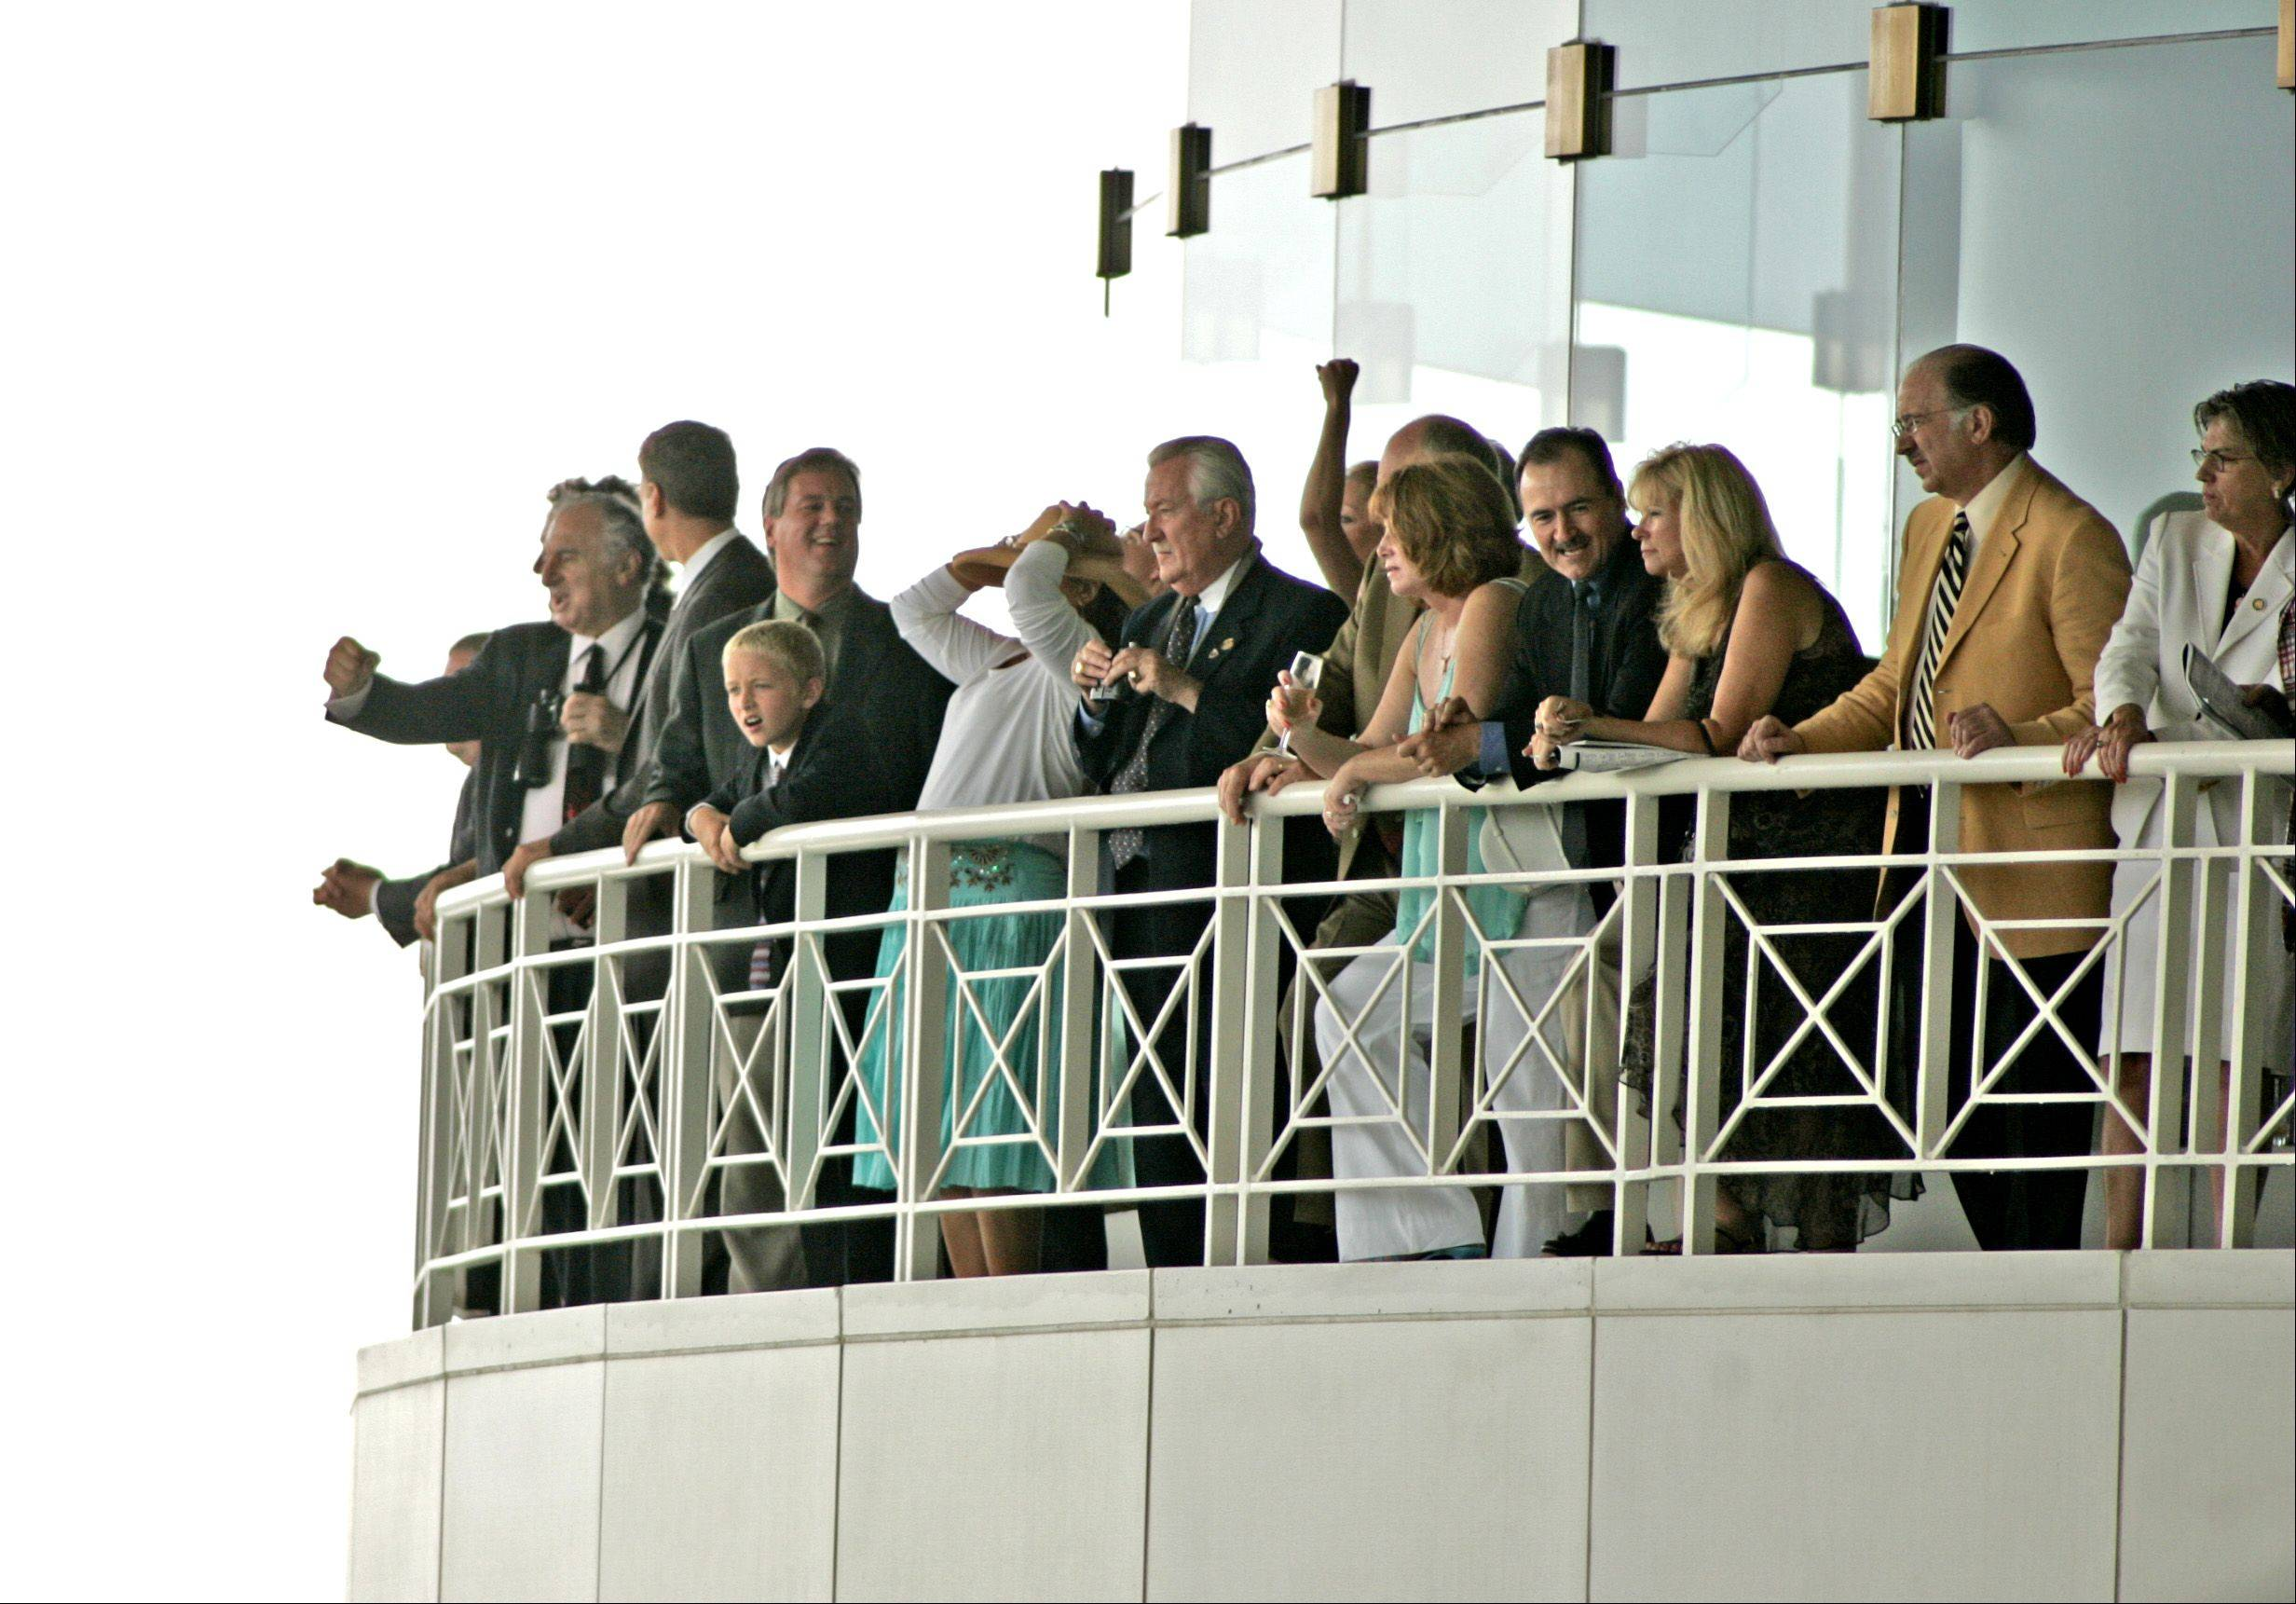 Fans celebrate during a previous Arlington Million.